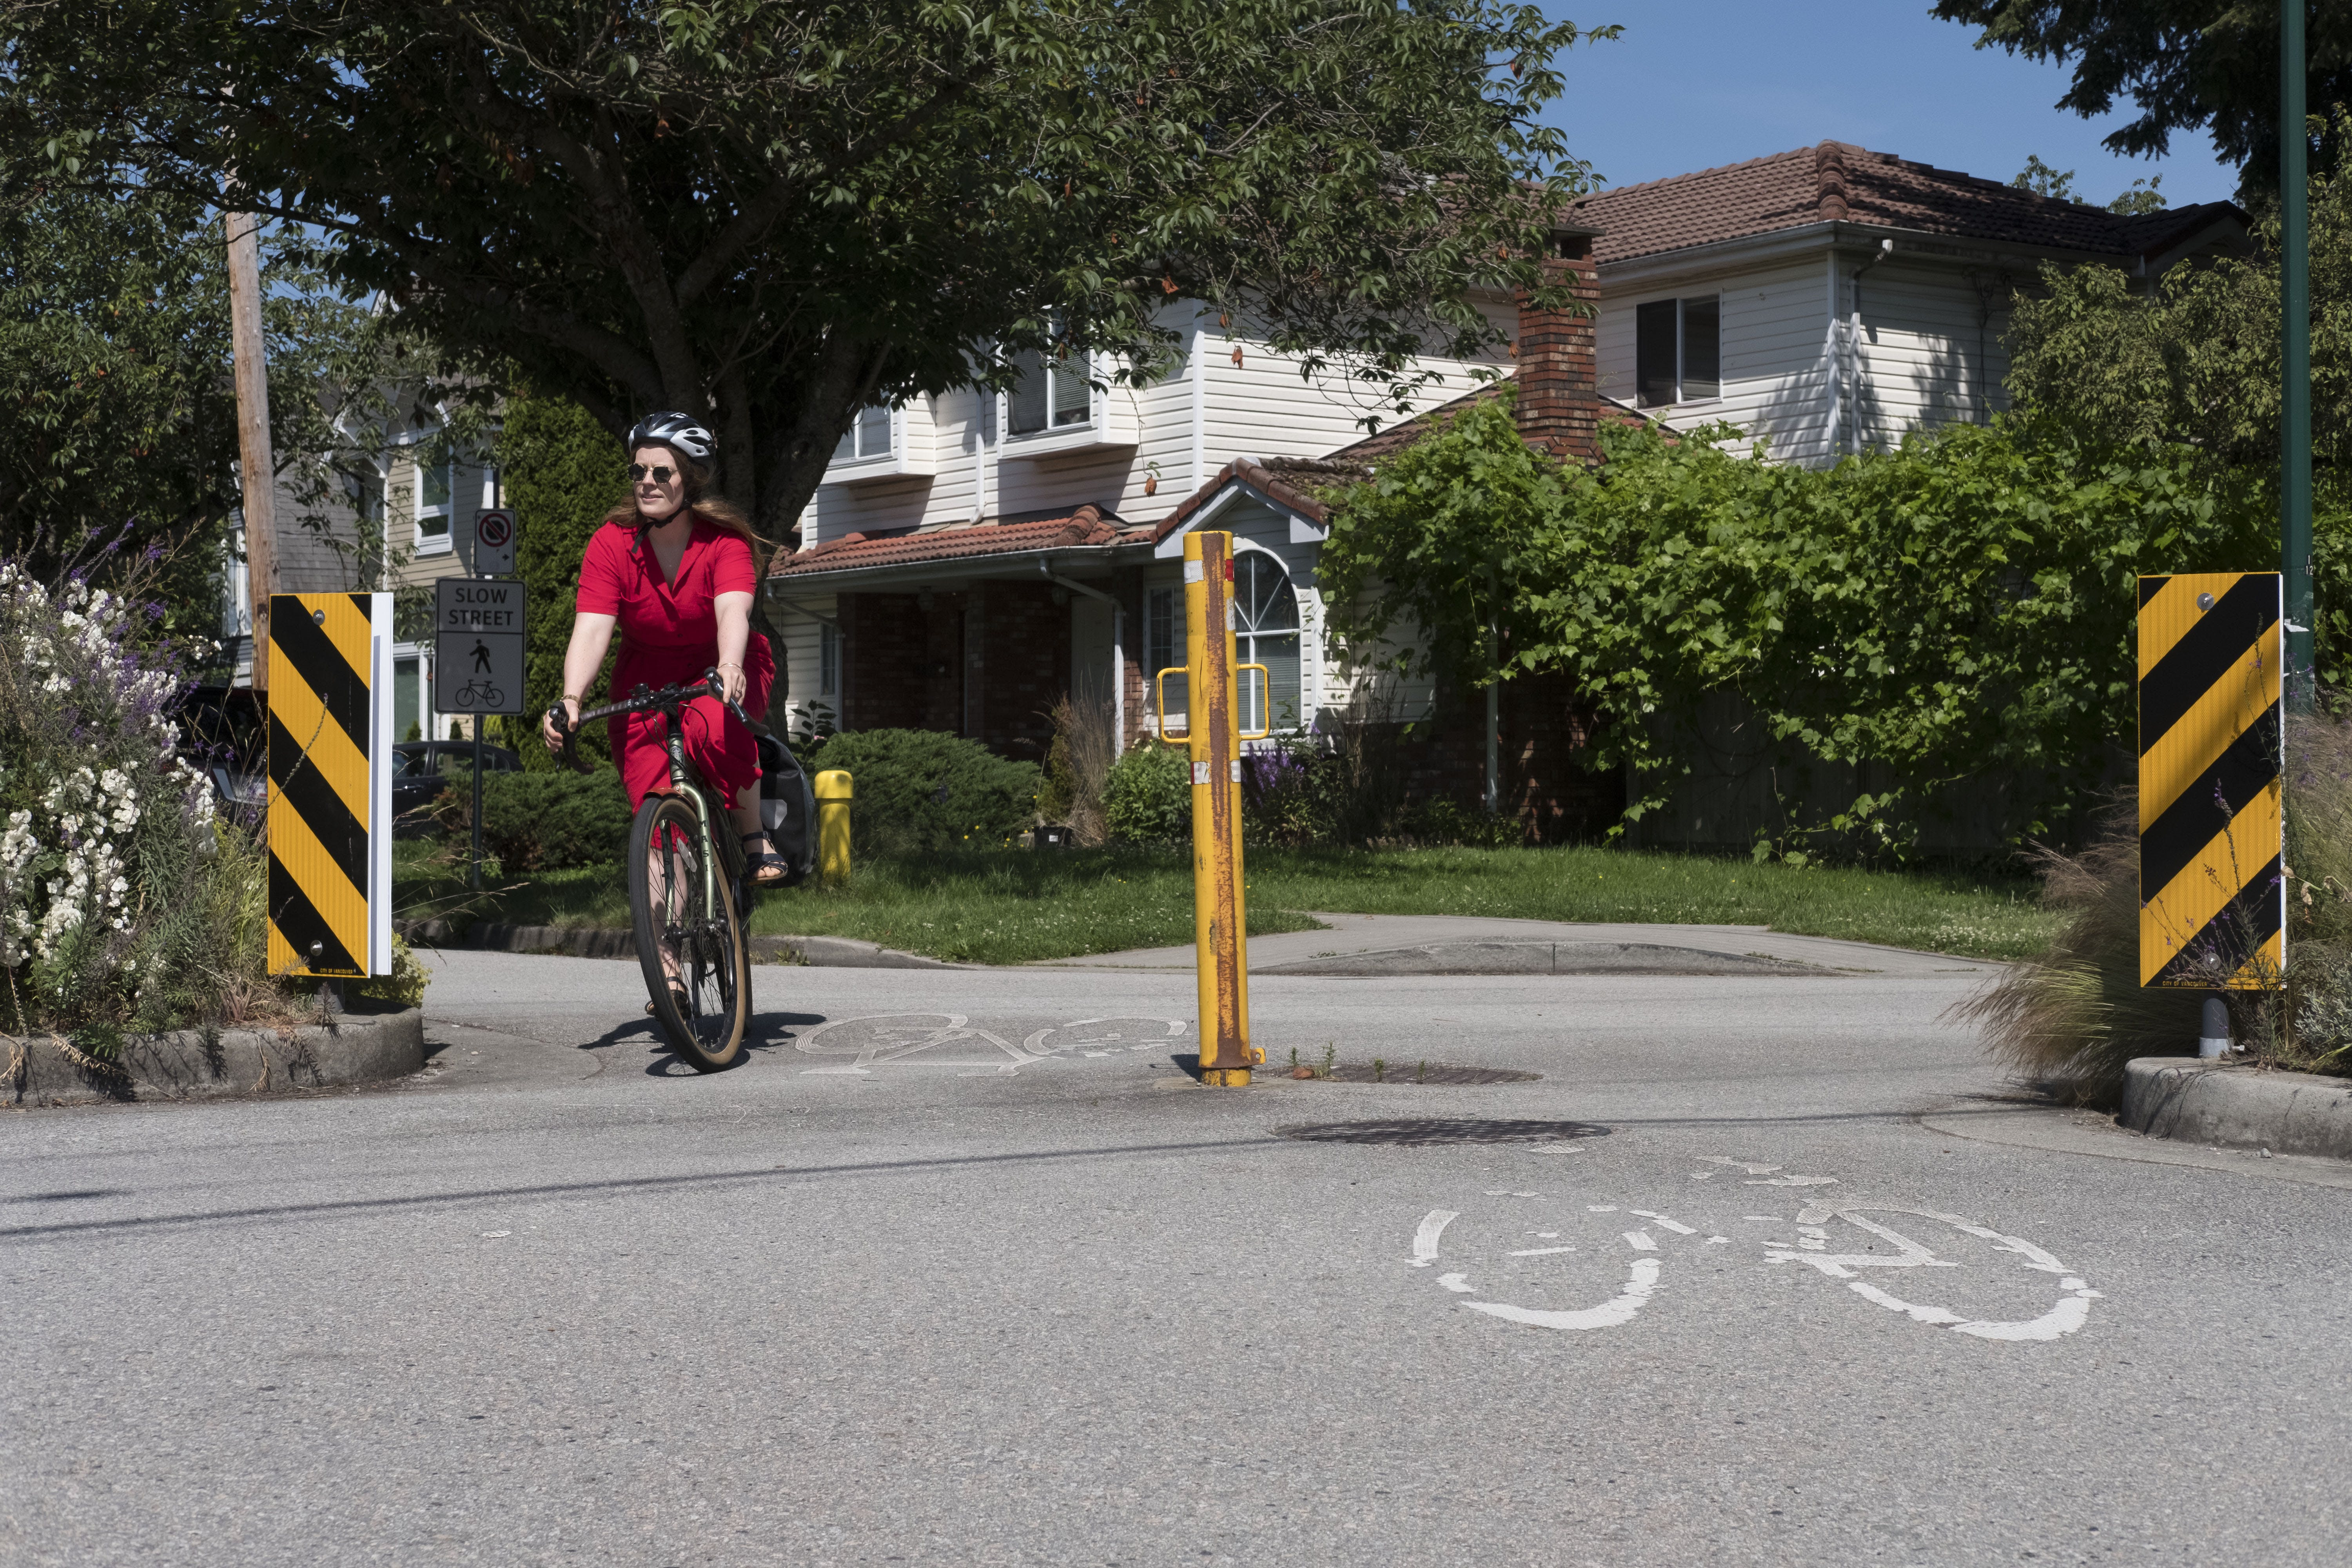 A cyclist in a red dress cycling along Slow Streets - Charles St at Lakewood Dr. Slow Streets connect neighbouring parks and open spaces.